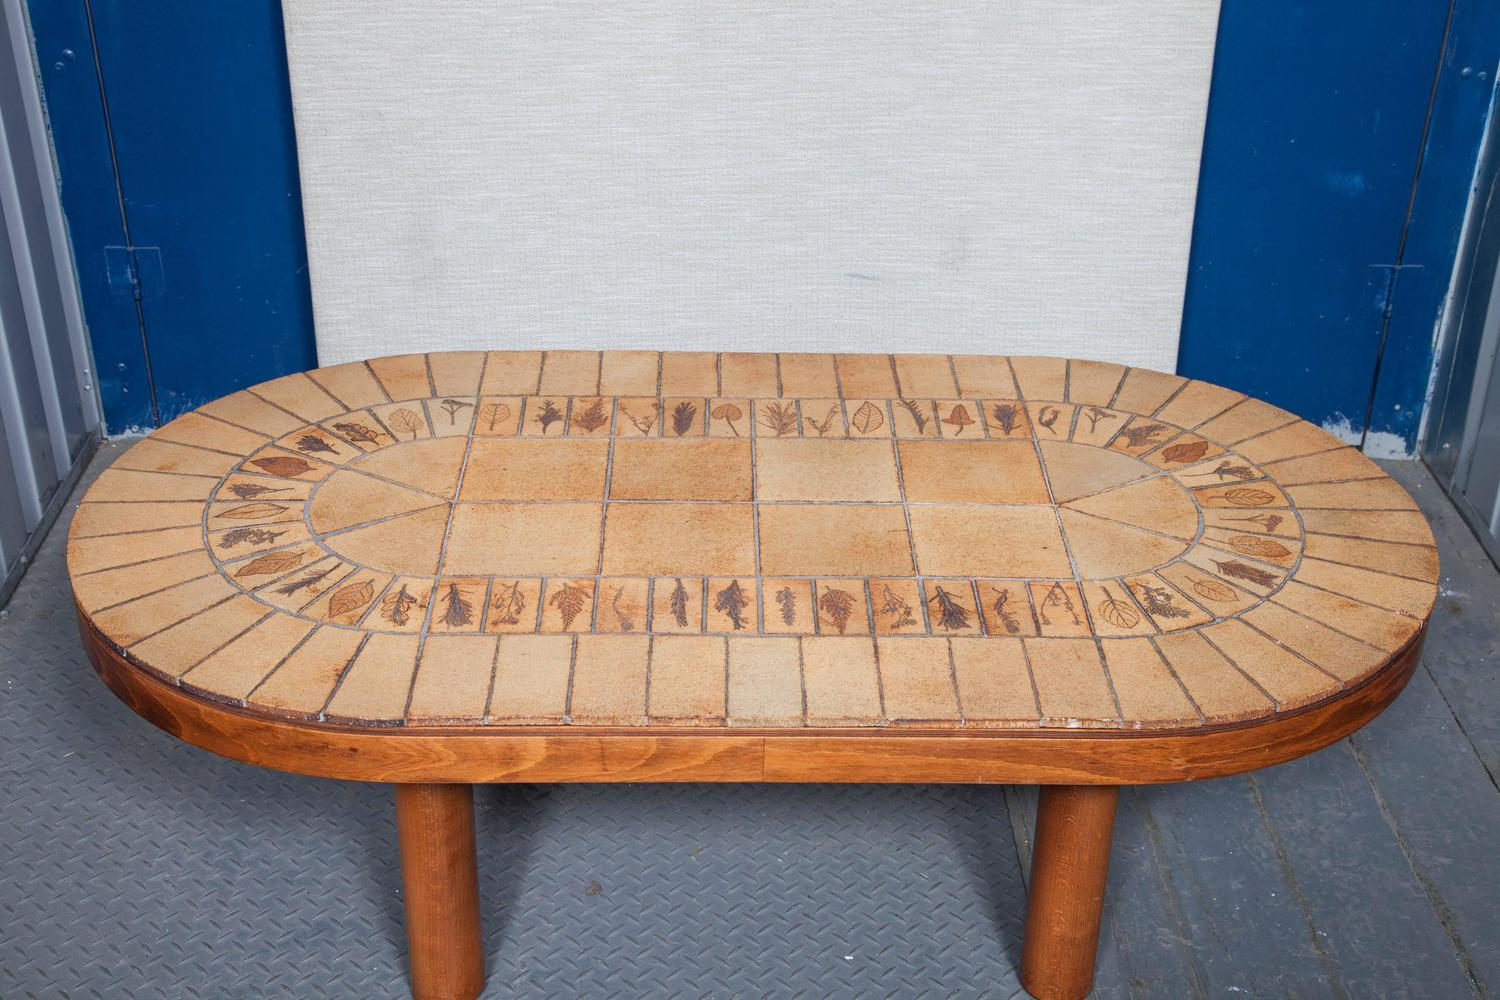 Oval tile top coffee table by roger capron for sale at 1stdibs for Tile top coffee table